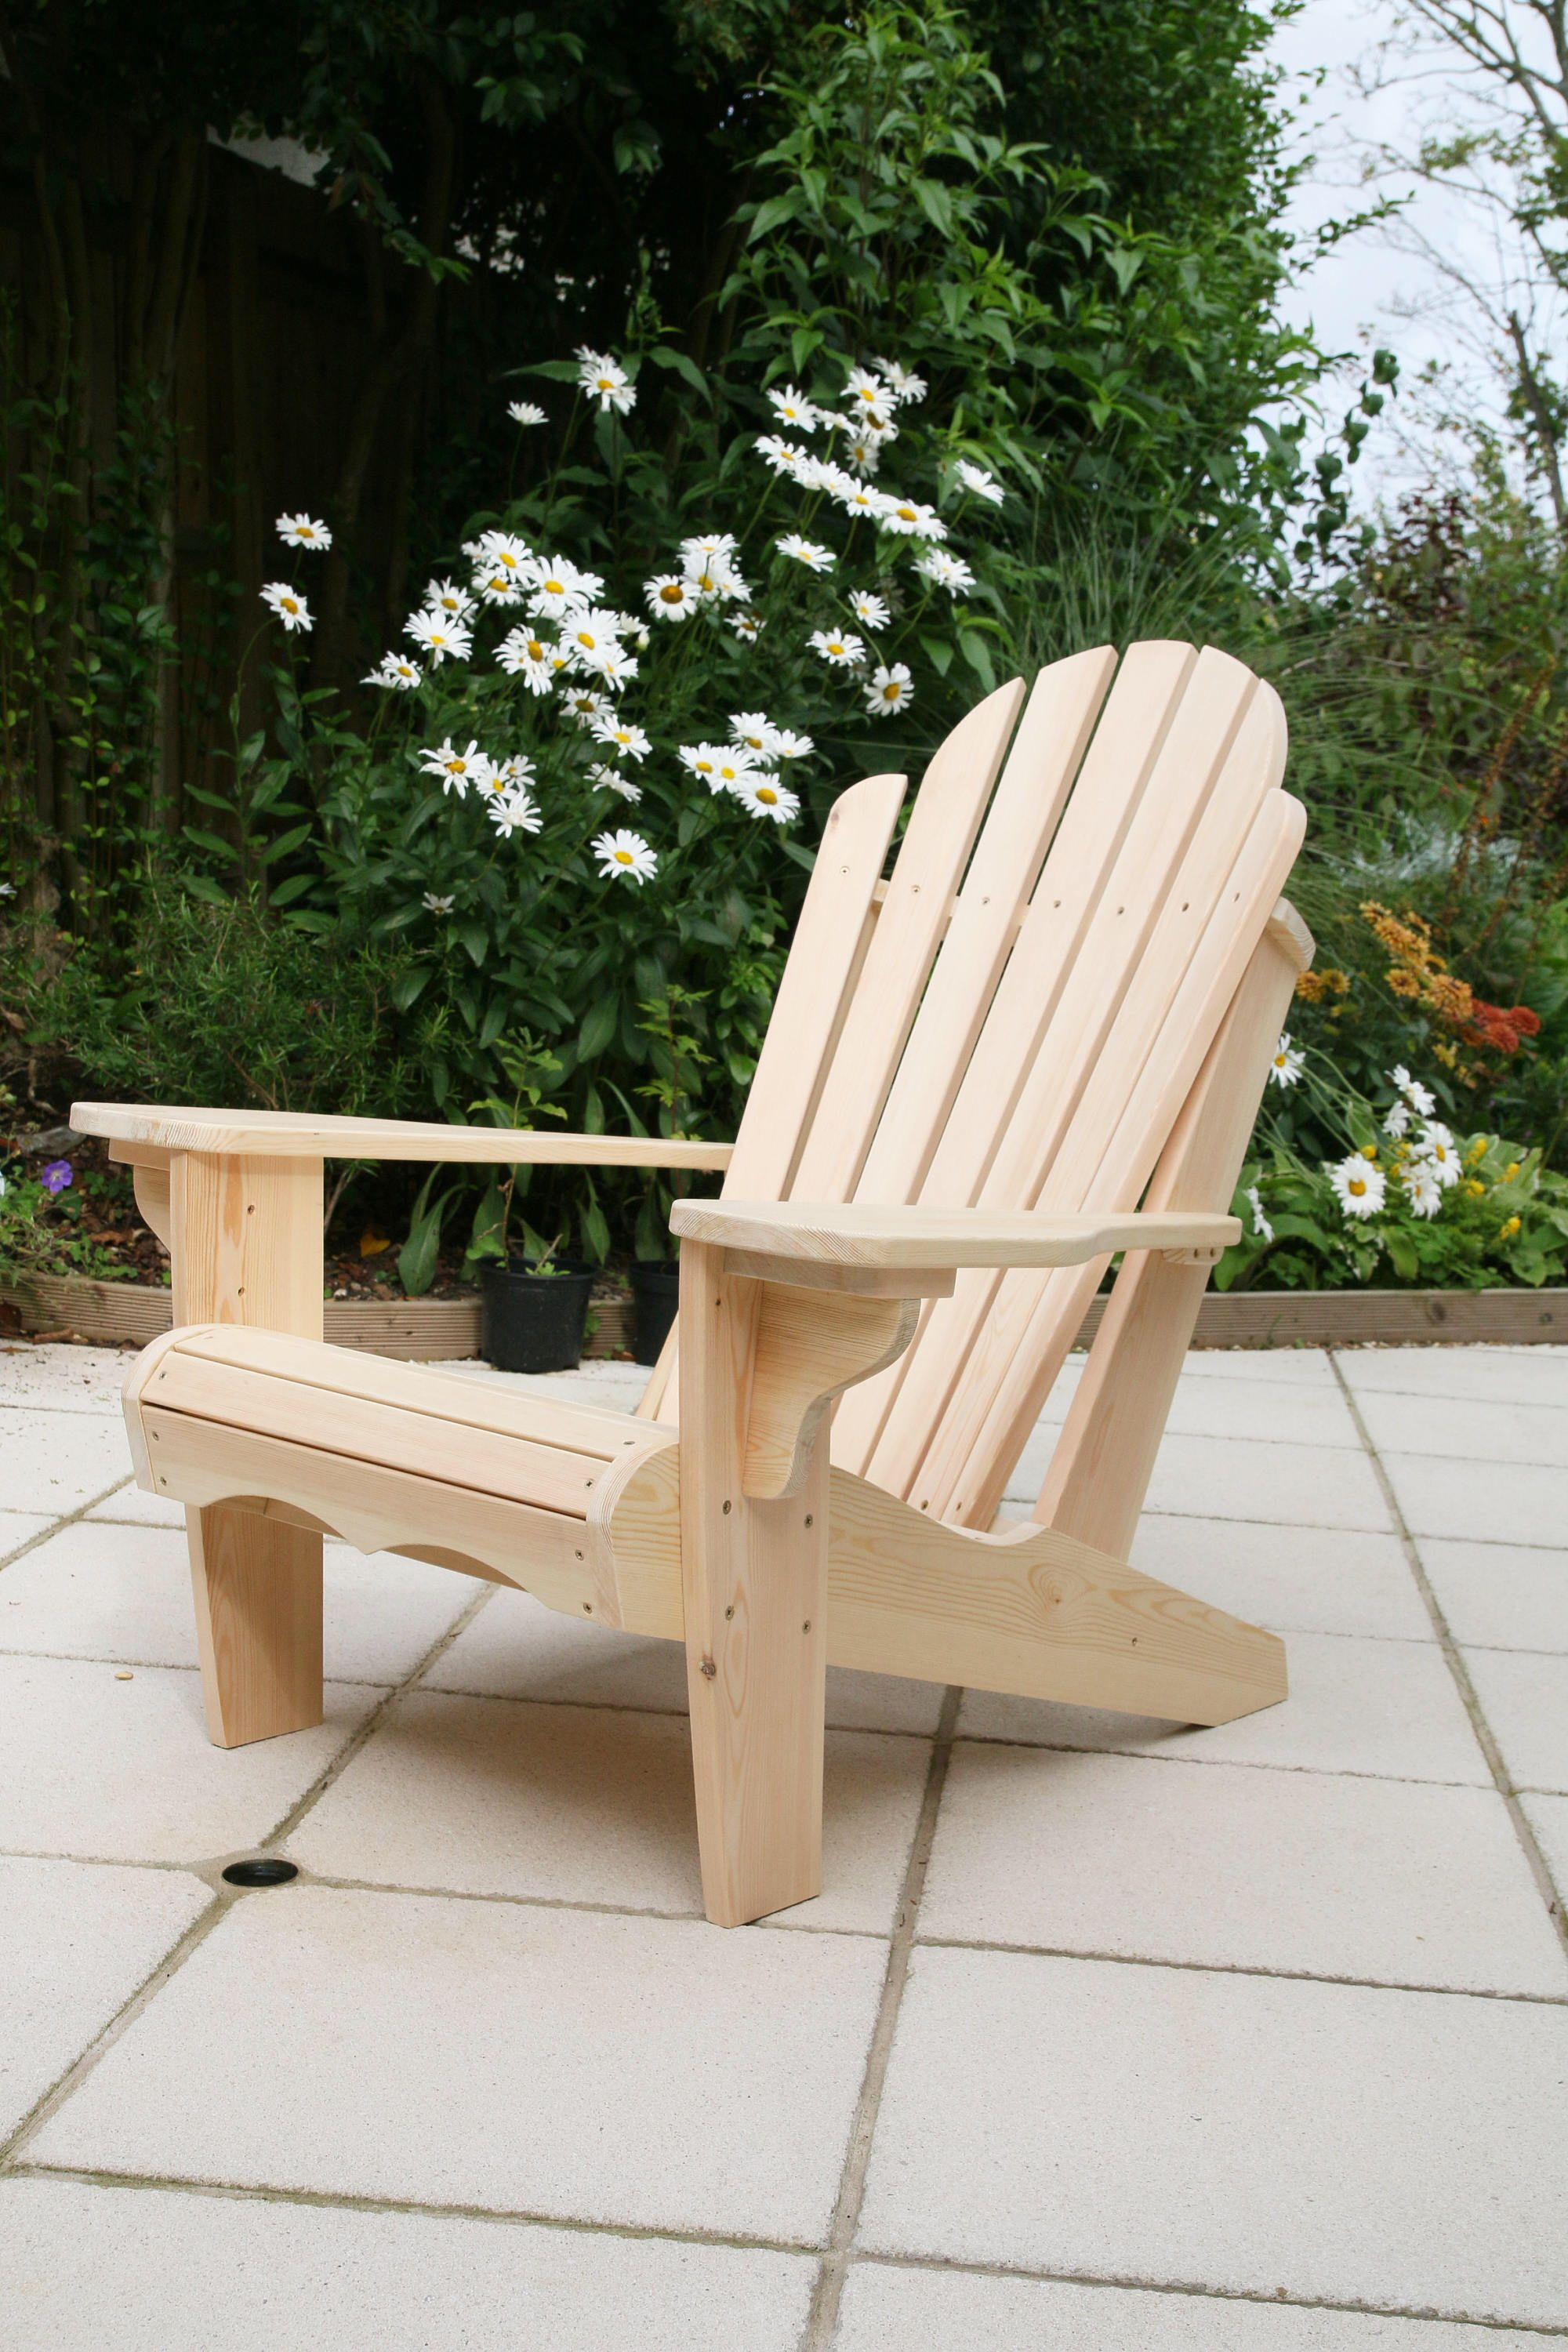 Adirondack Chairs Adirondack Chairs Chair Garden Chairs